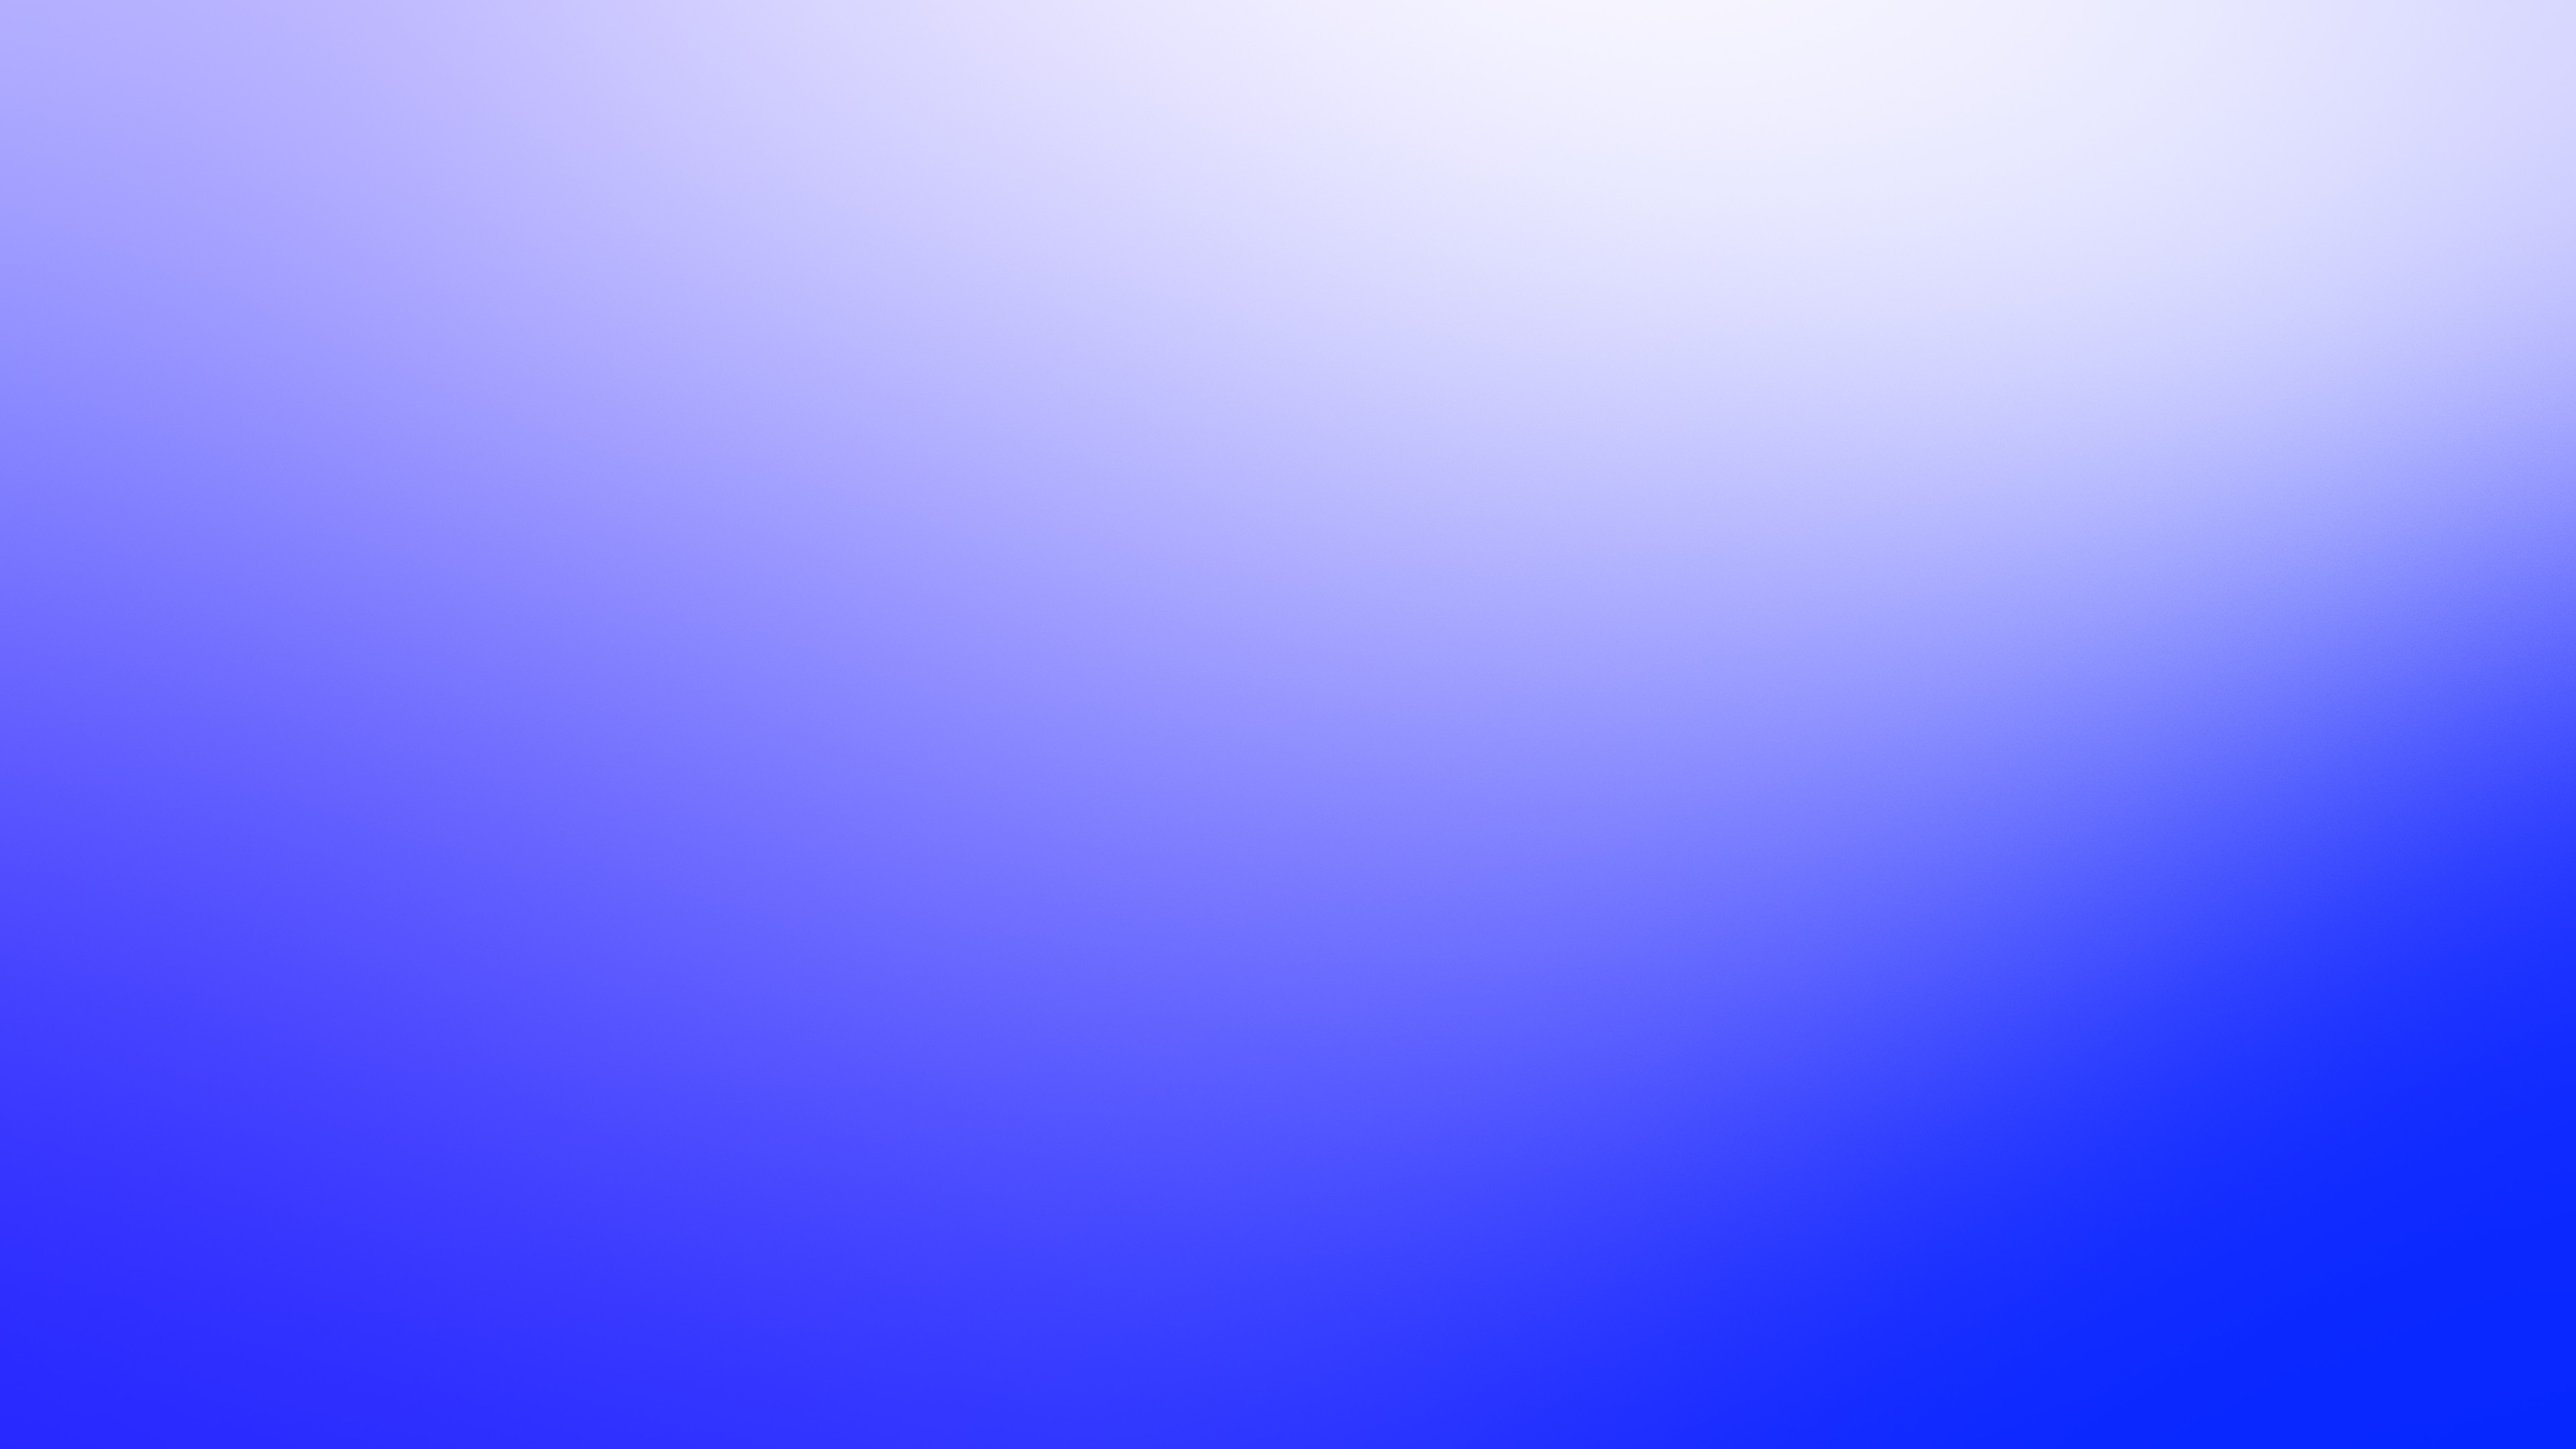 Wallpaper Blue Color Background Hd